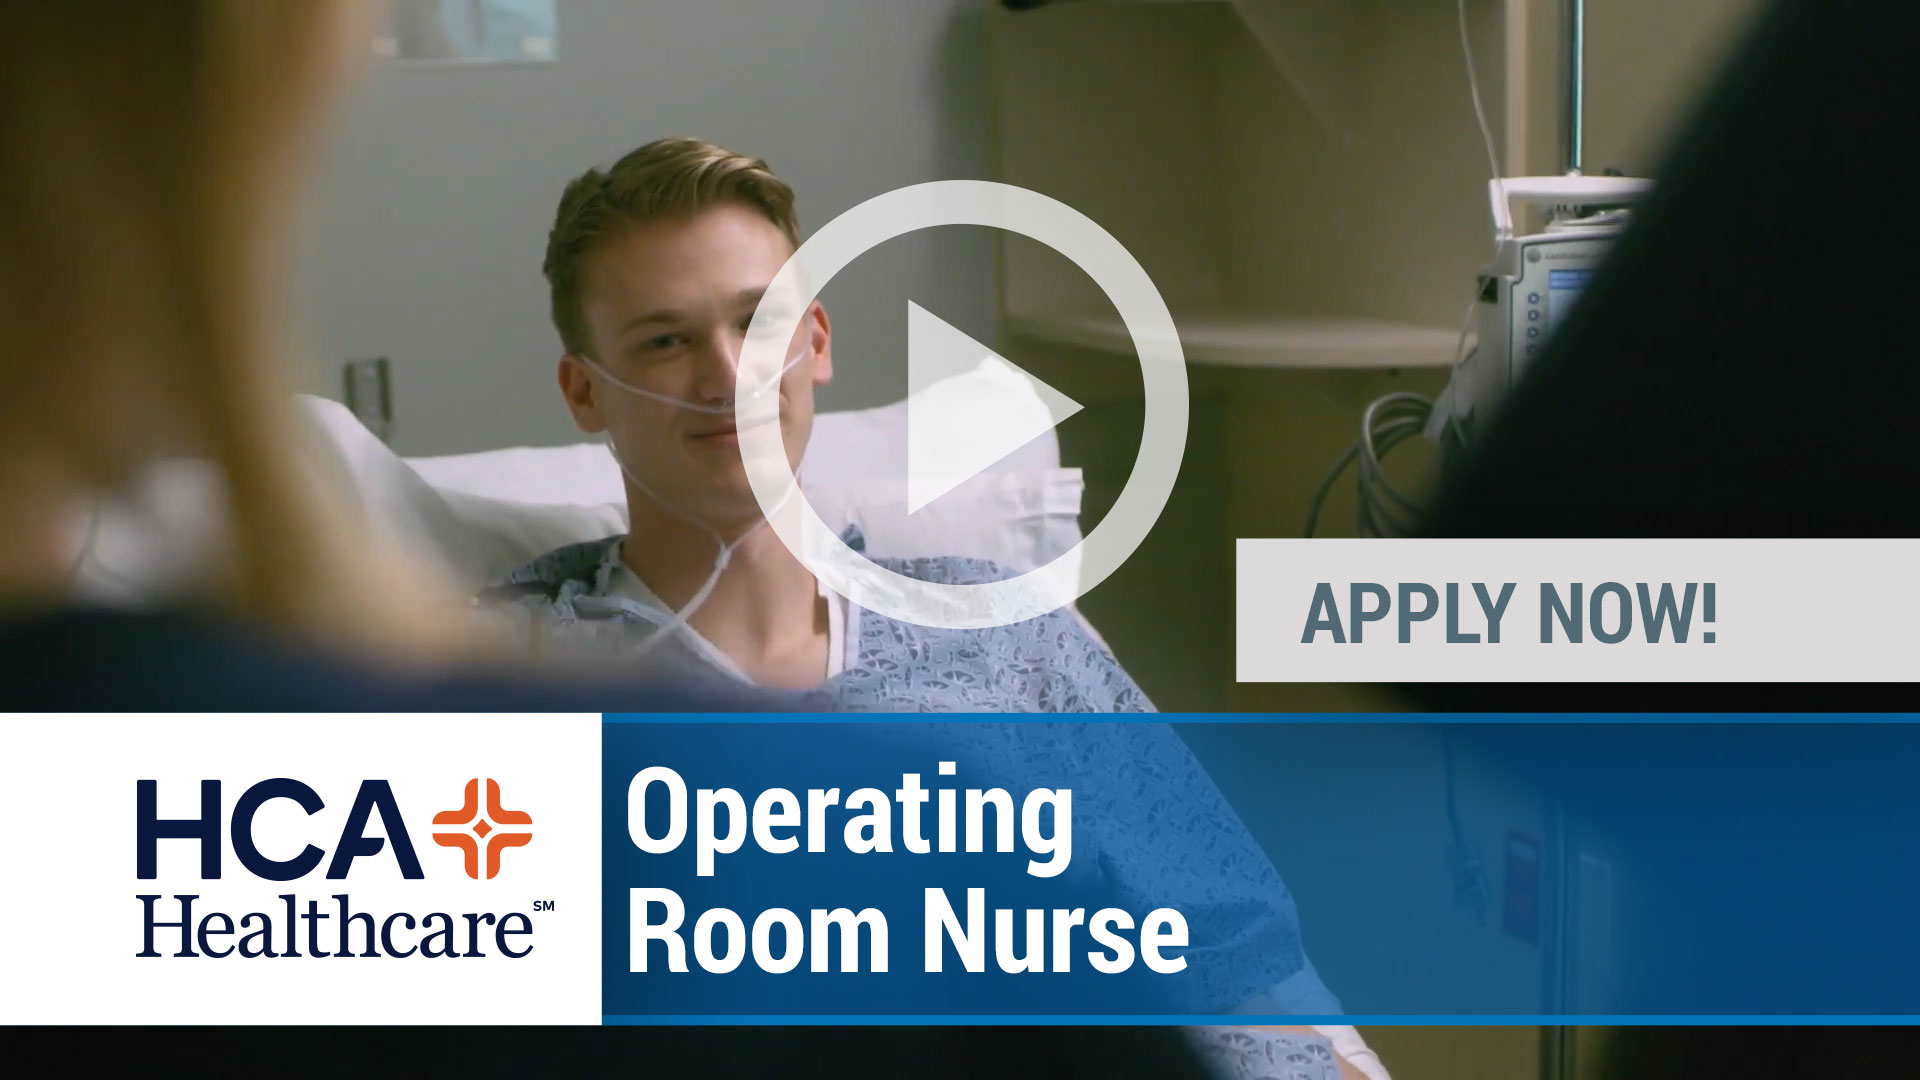 Watch our careers video for available job opening Operating Room Nurse in San Antonio, Texas